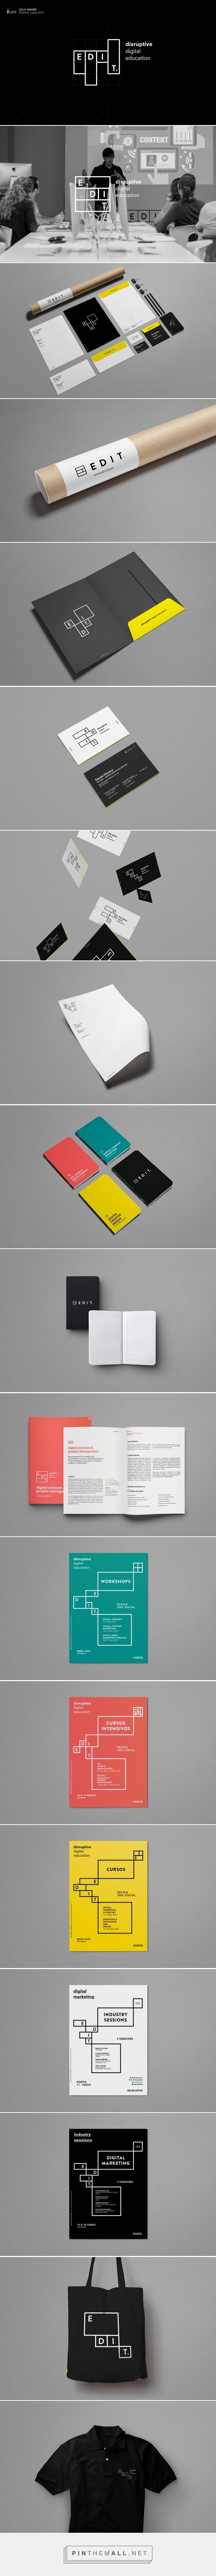 EDIT. Disruptive Digital Education on Behance... - a grouped images picture - Pin Them All